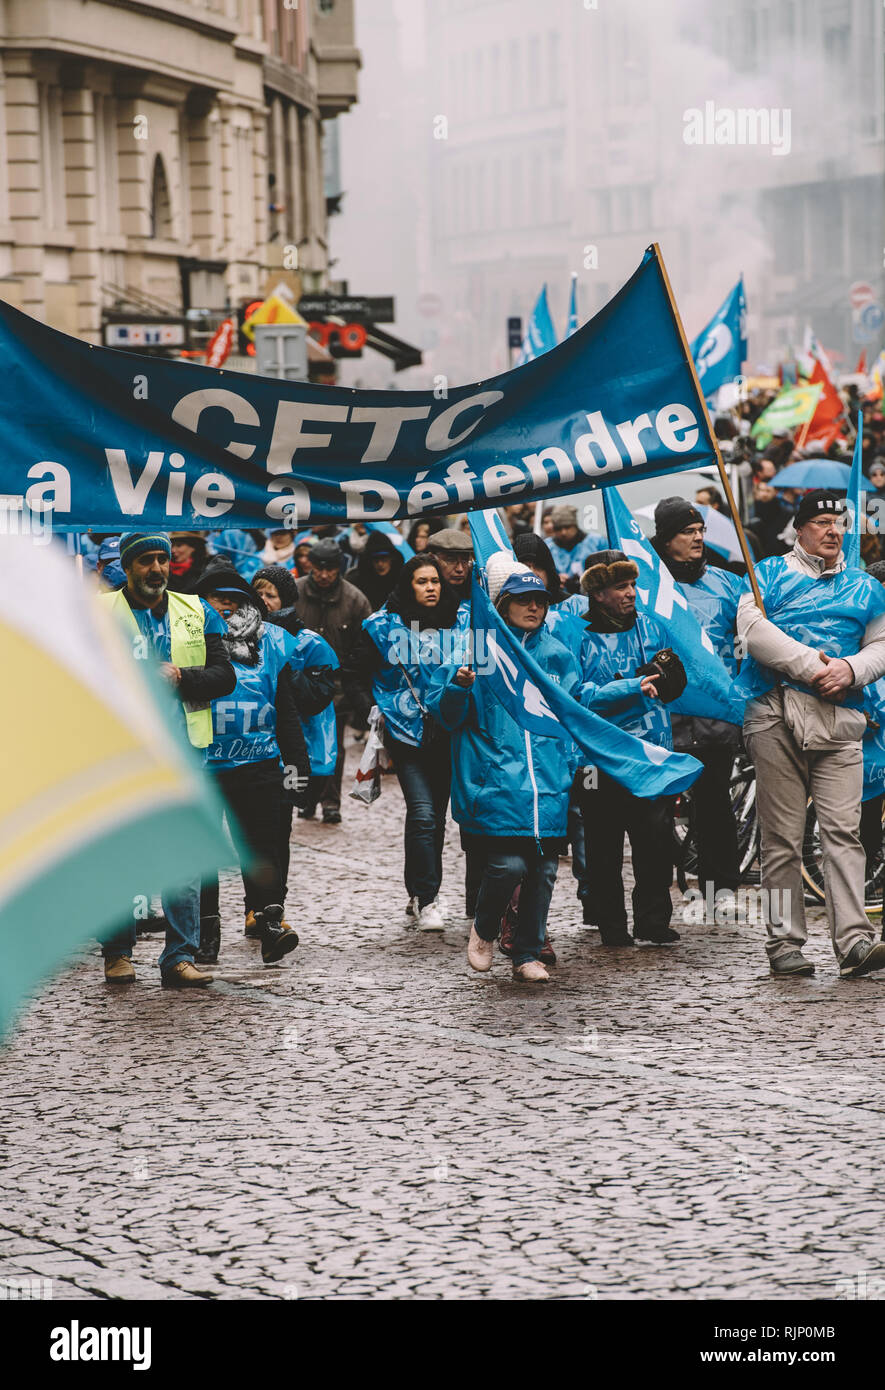 STRASBOURG, FRANCE - MAR 22, 2018: Group of people in blue carrying flags and performing organized protest meeting walking on street, France - Stock Image